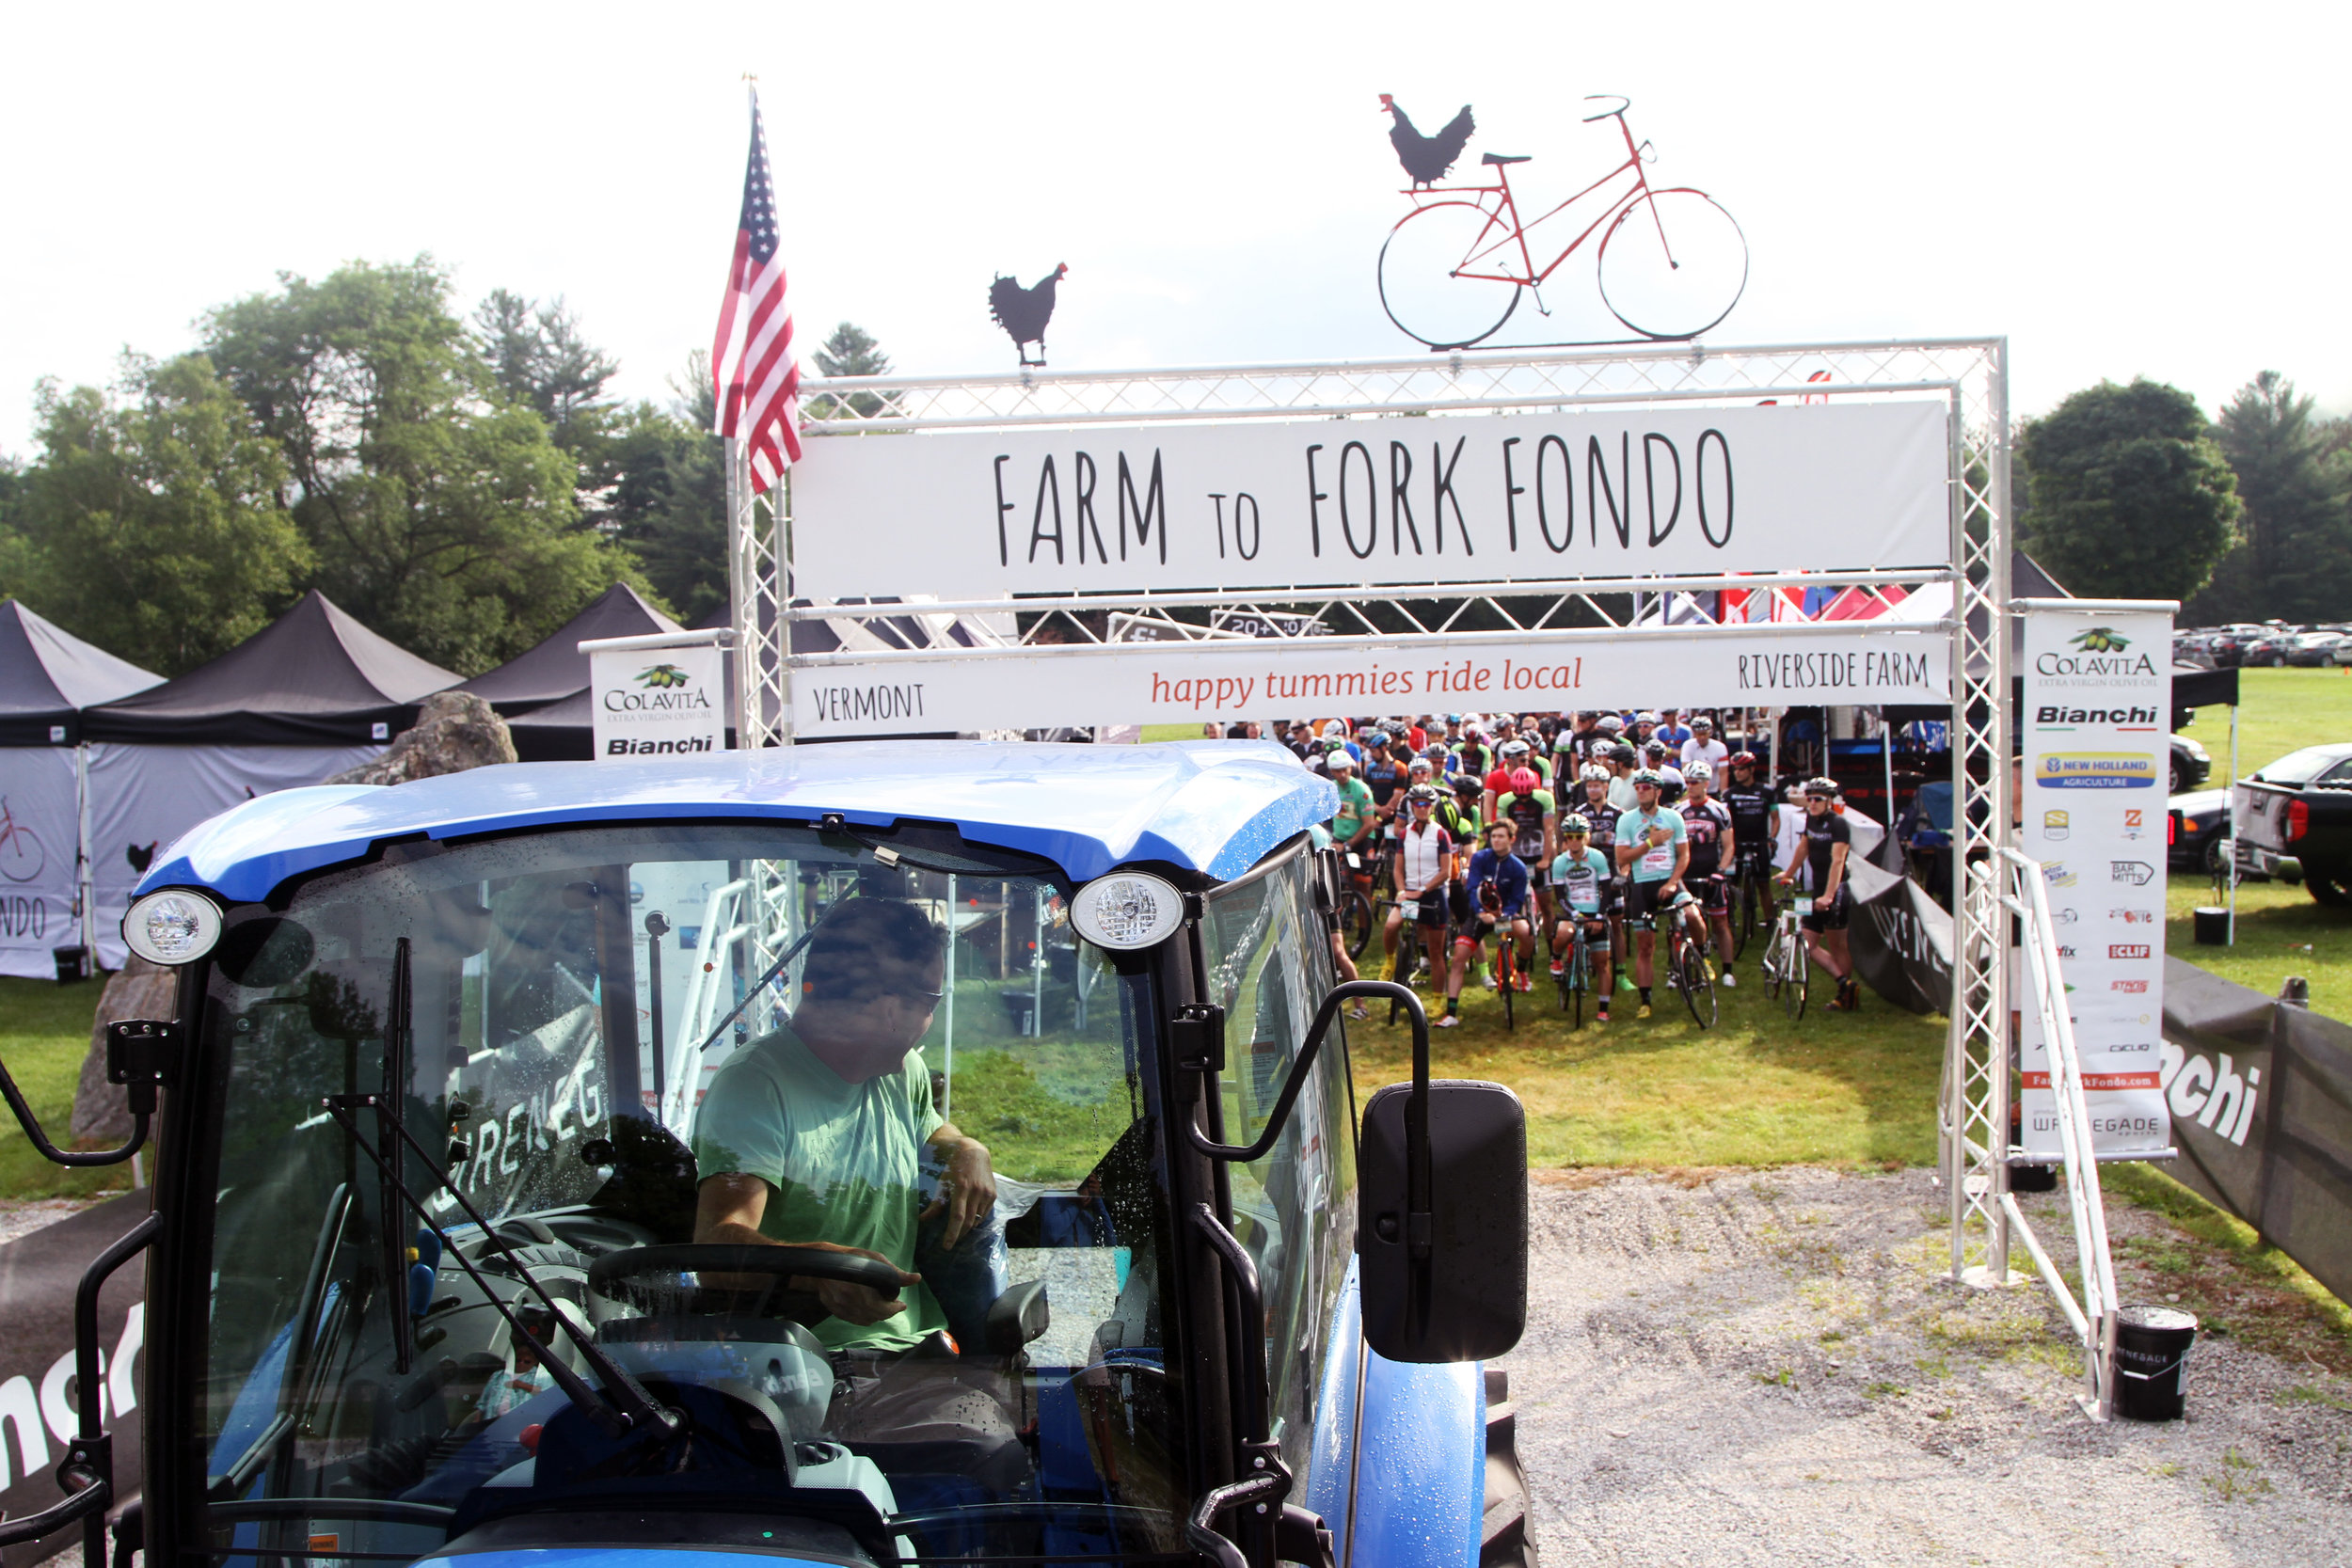 Farm to Fork Fondo – Vermont, a farm to table cycling event series in the Northeast. Local farmer Joe Pimentel leads cyclists in a New Holland tractor